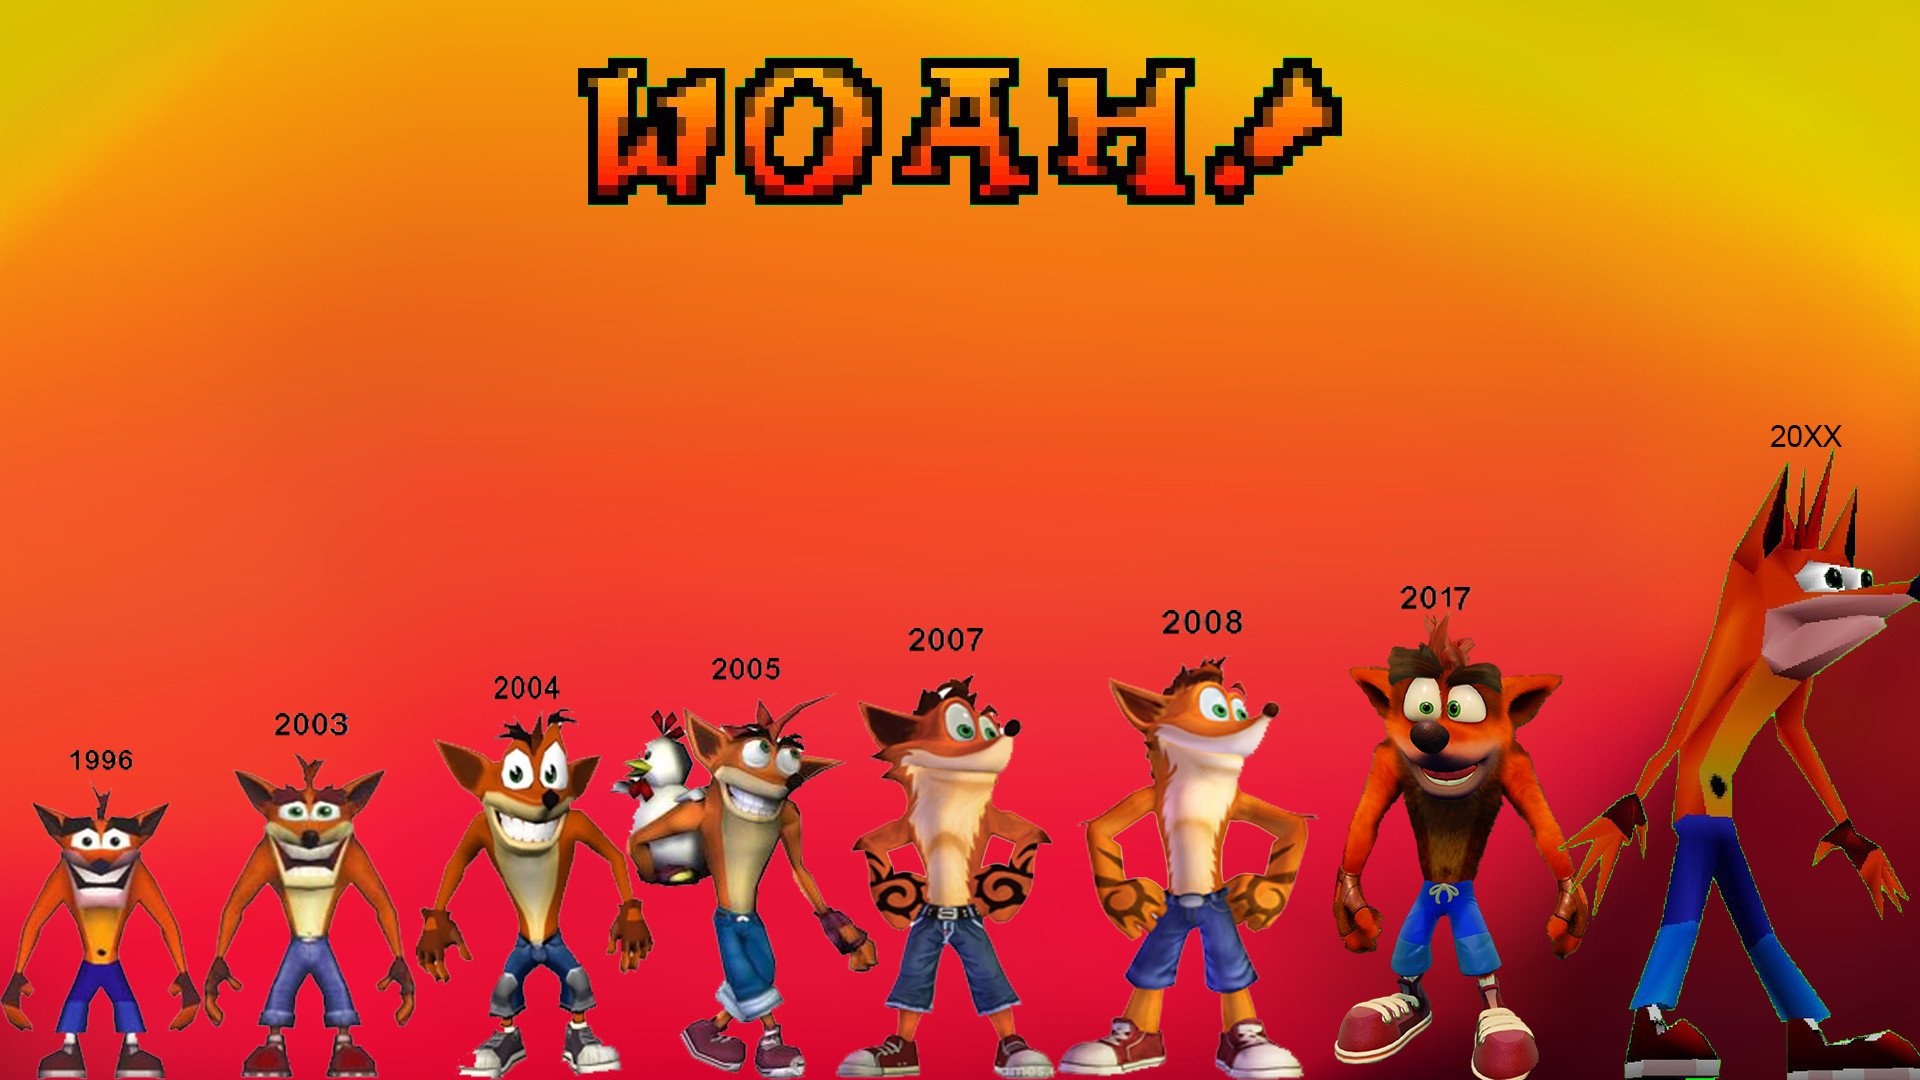 Crash Bandicoot Wallpaper Iphone 20 Dzbcorg